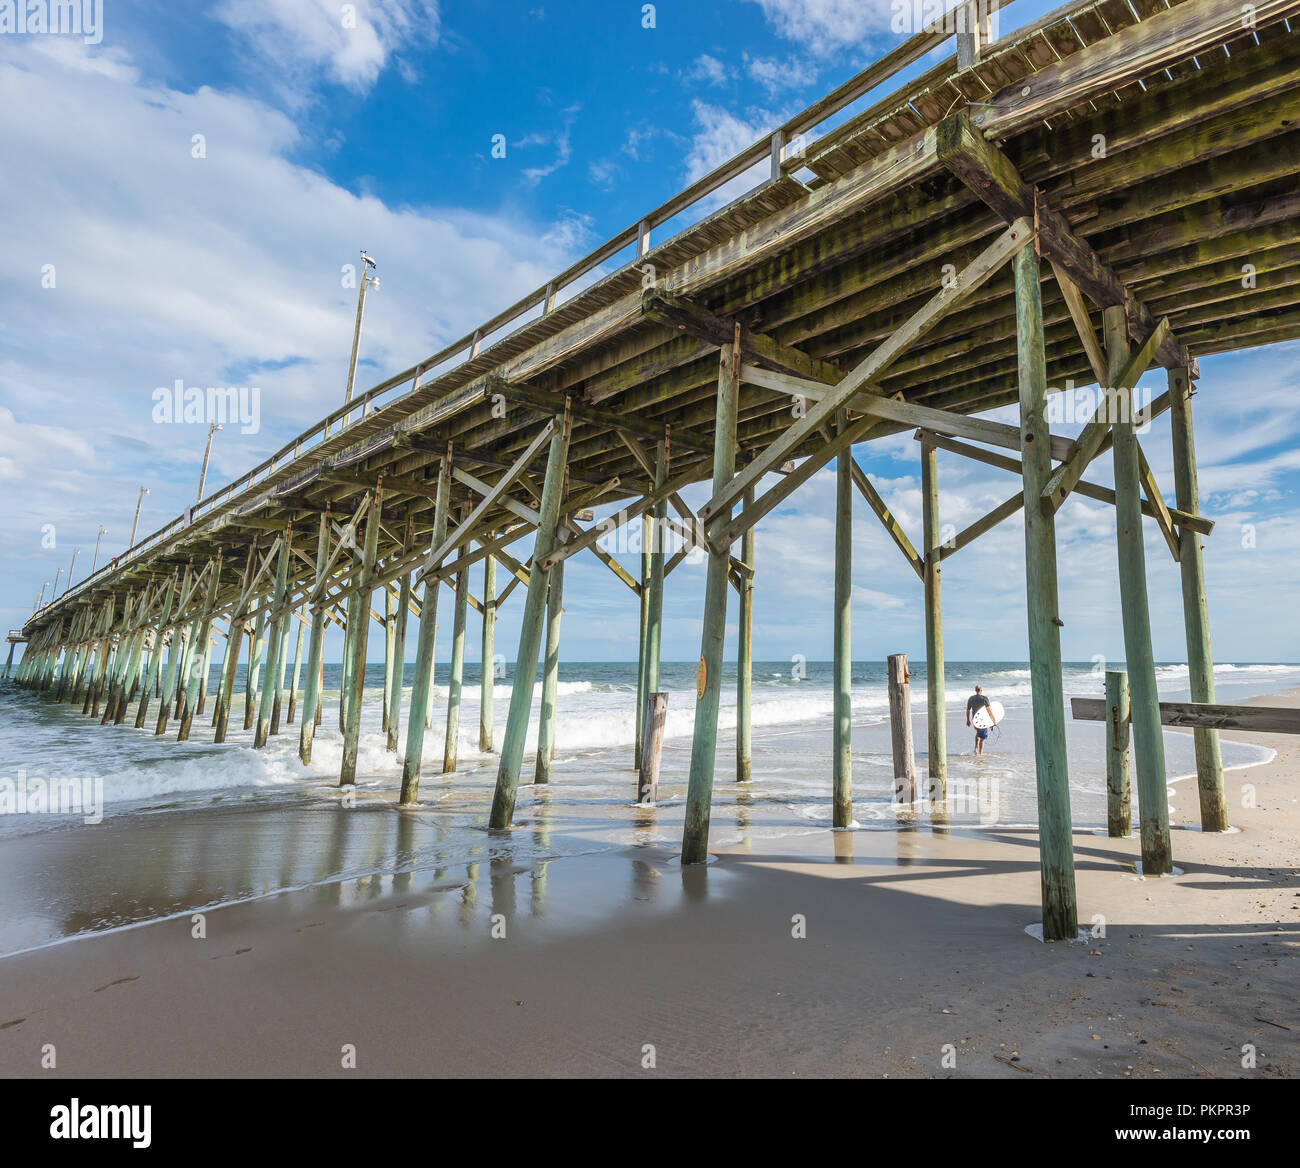 Underneath Wooden Jetty Structure Wooden Stock Photos